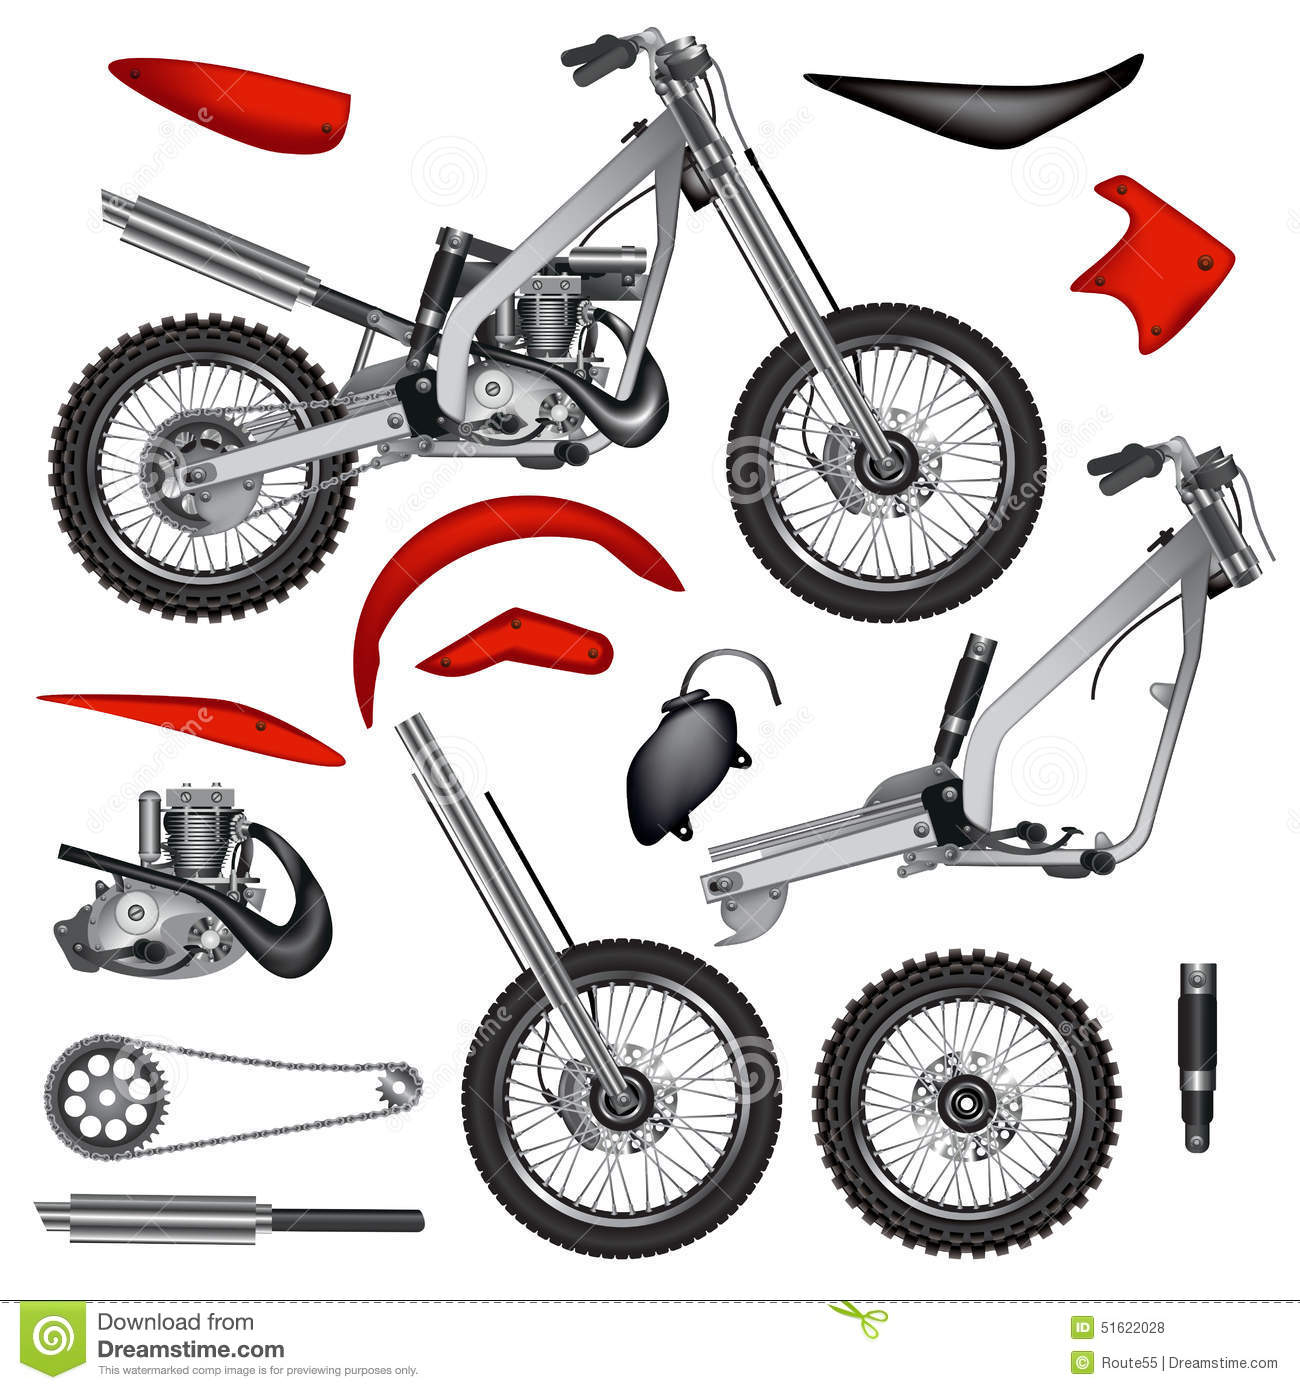 motorcycle parts business plan